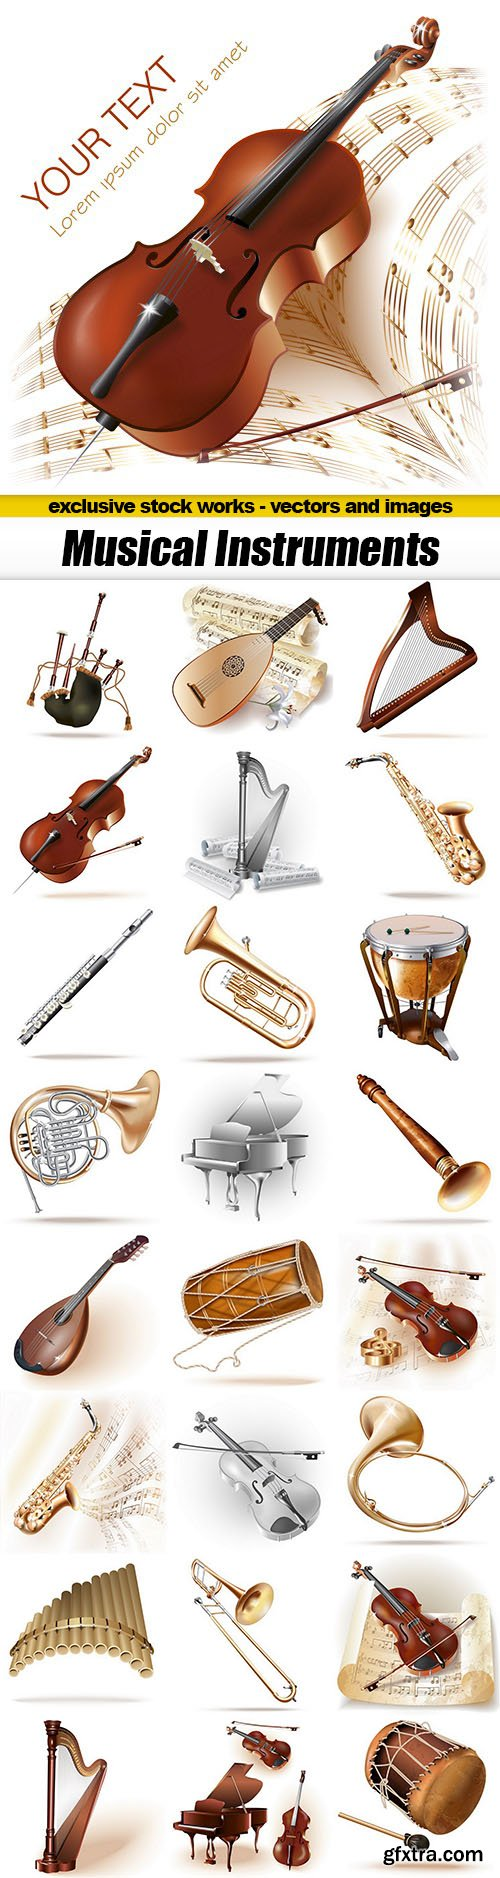 Musical Instruments - 25xEPS